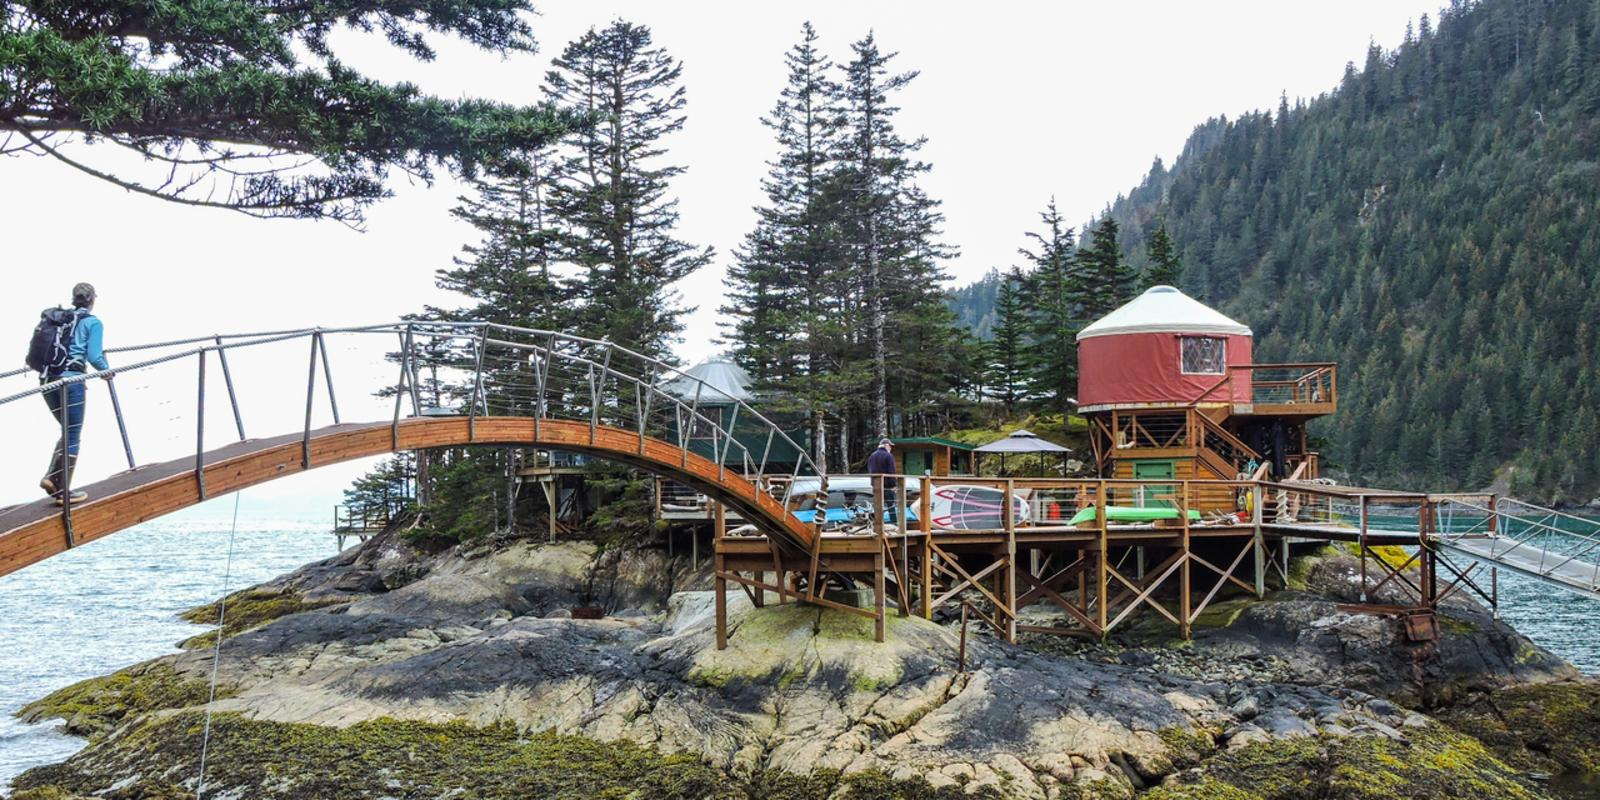 Bridge. Cabins